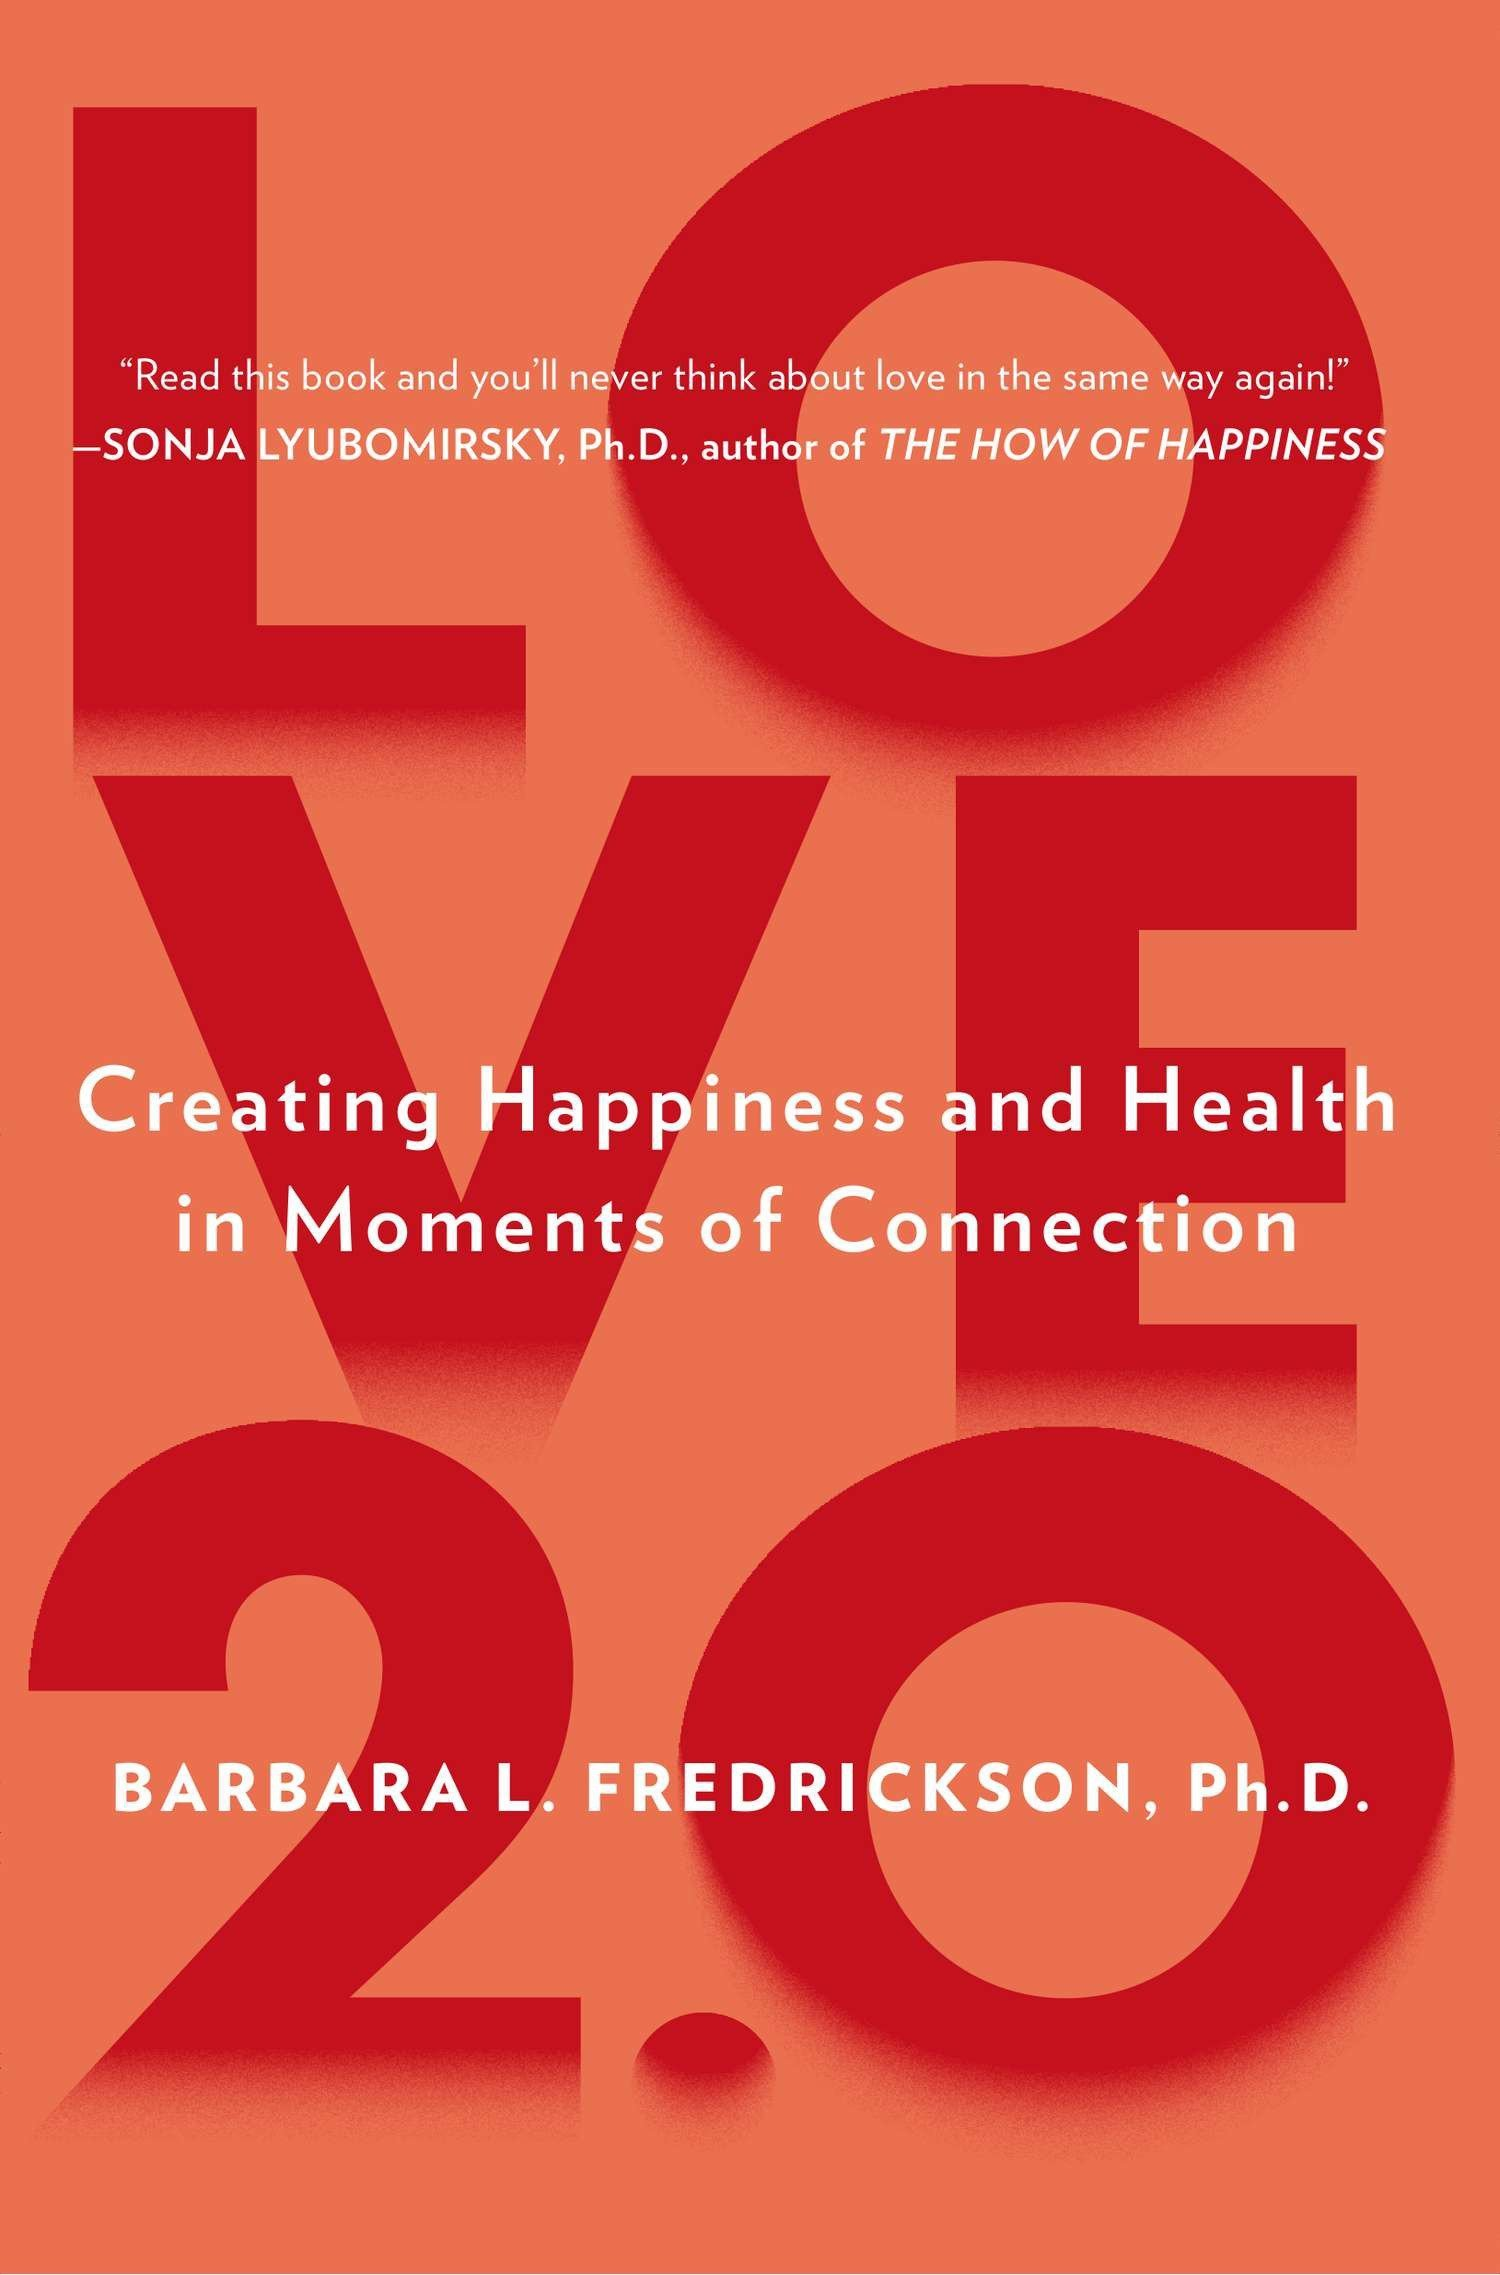 Love 20 finding happiness and health in moments of connection love 20 finding happiness and health in moments of connection barbara l fredrickson phd 9780142180471 amazon books fandeluxe Image collections